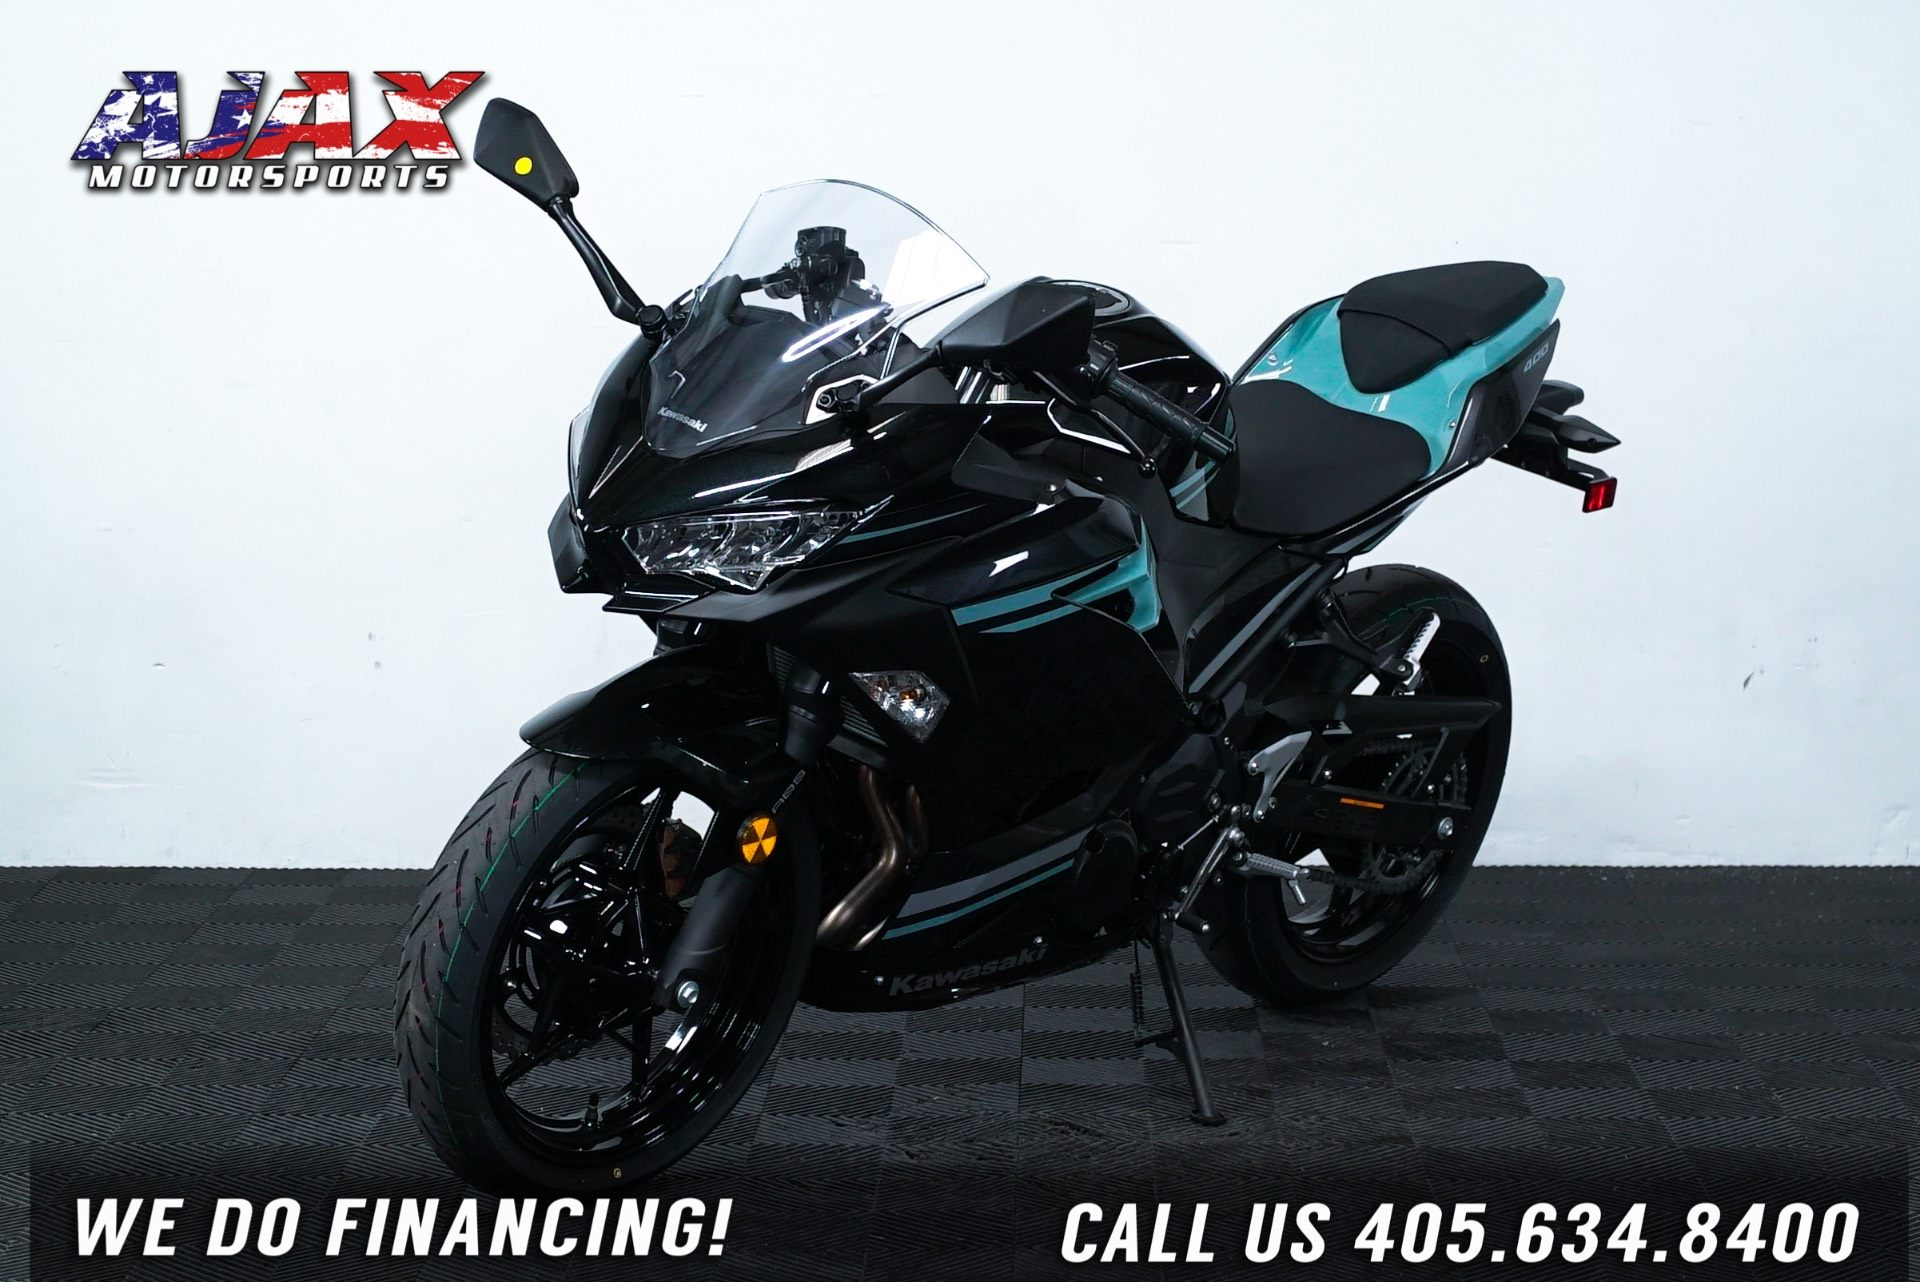 2020 Kawasaki Ninja 400 ABS in Oklahoma City, Oklahoma - Photo 4